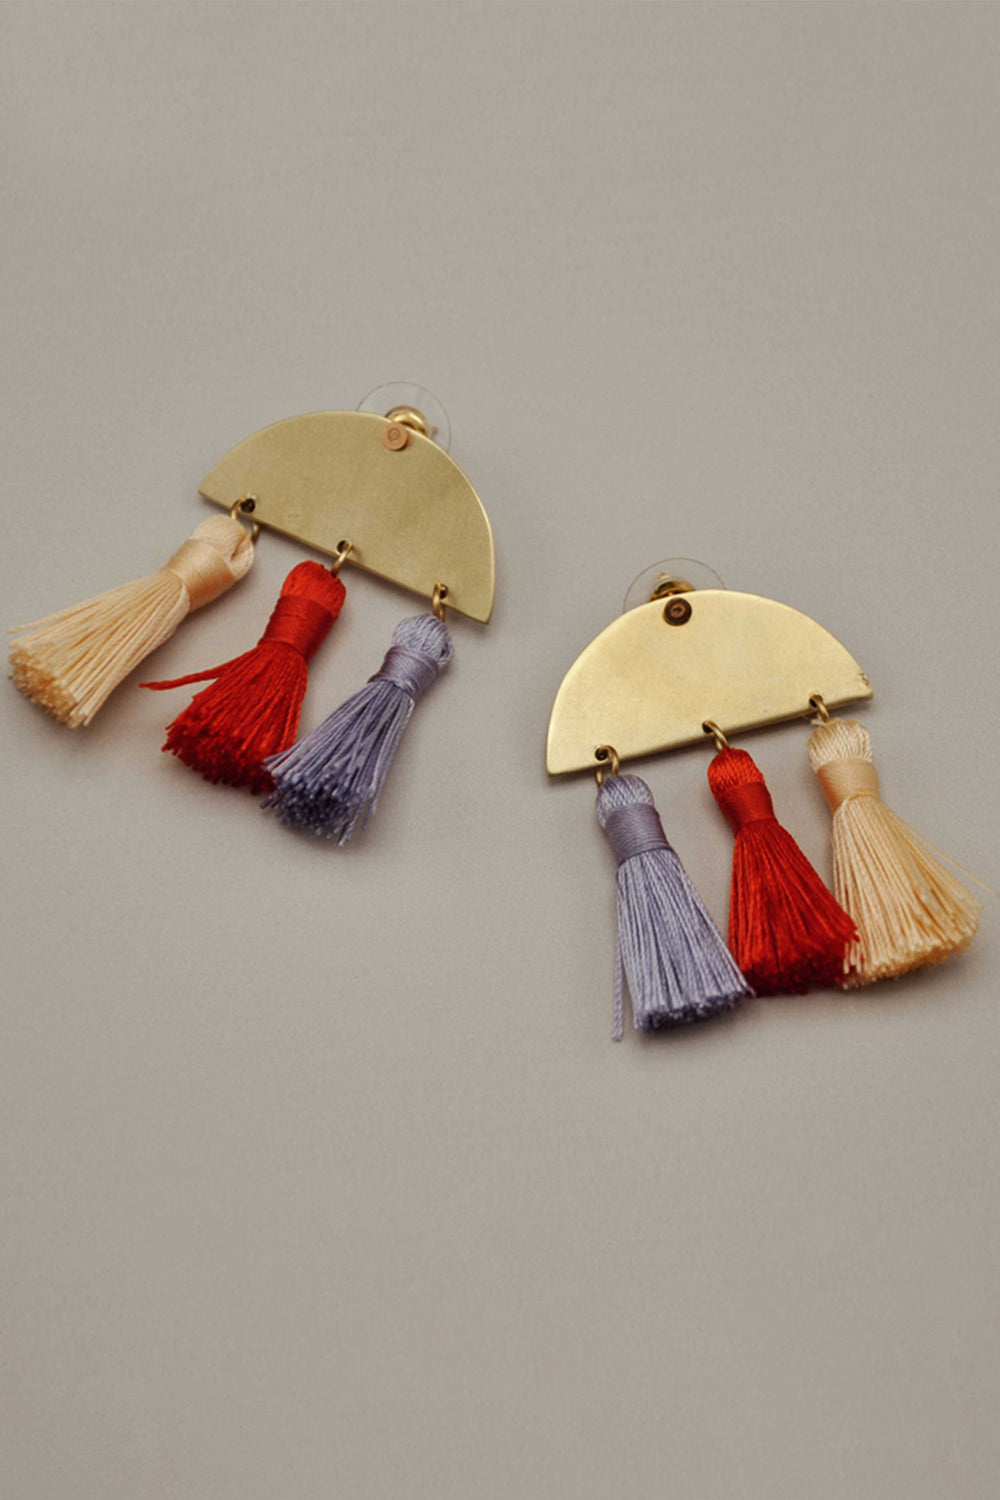 COSTA RICA EARRINGS | Women's Online Shopping | CHICLEFRIQUE